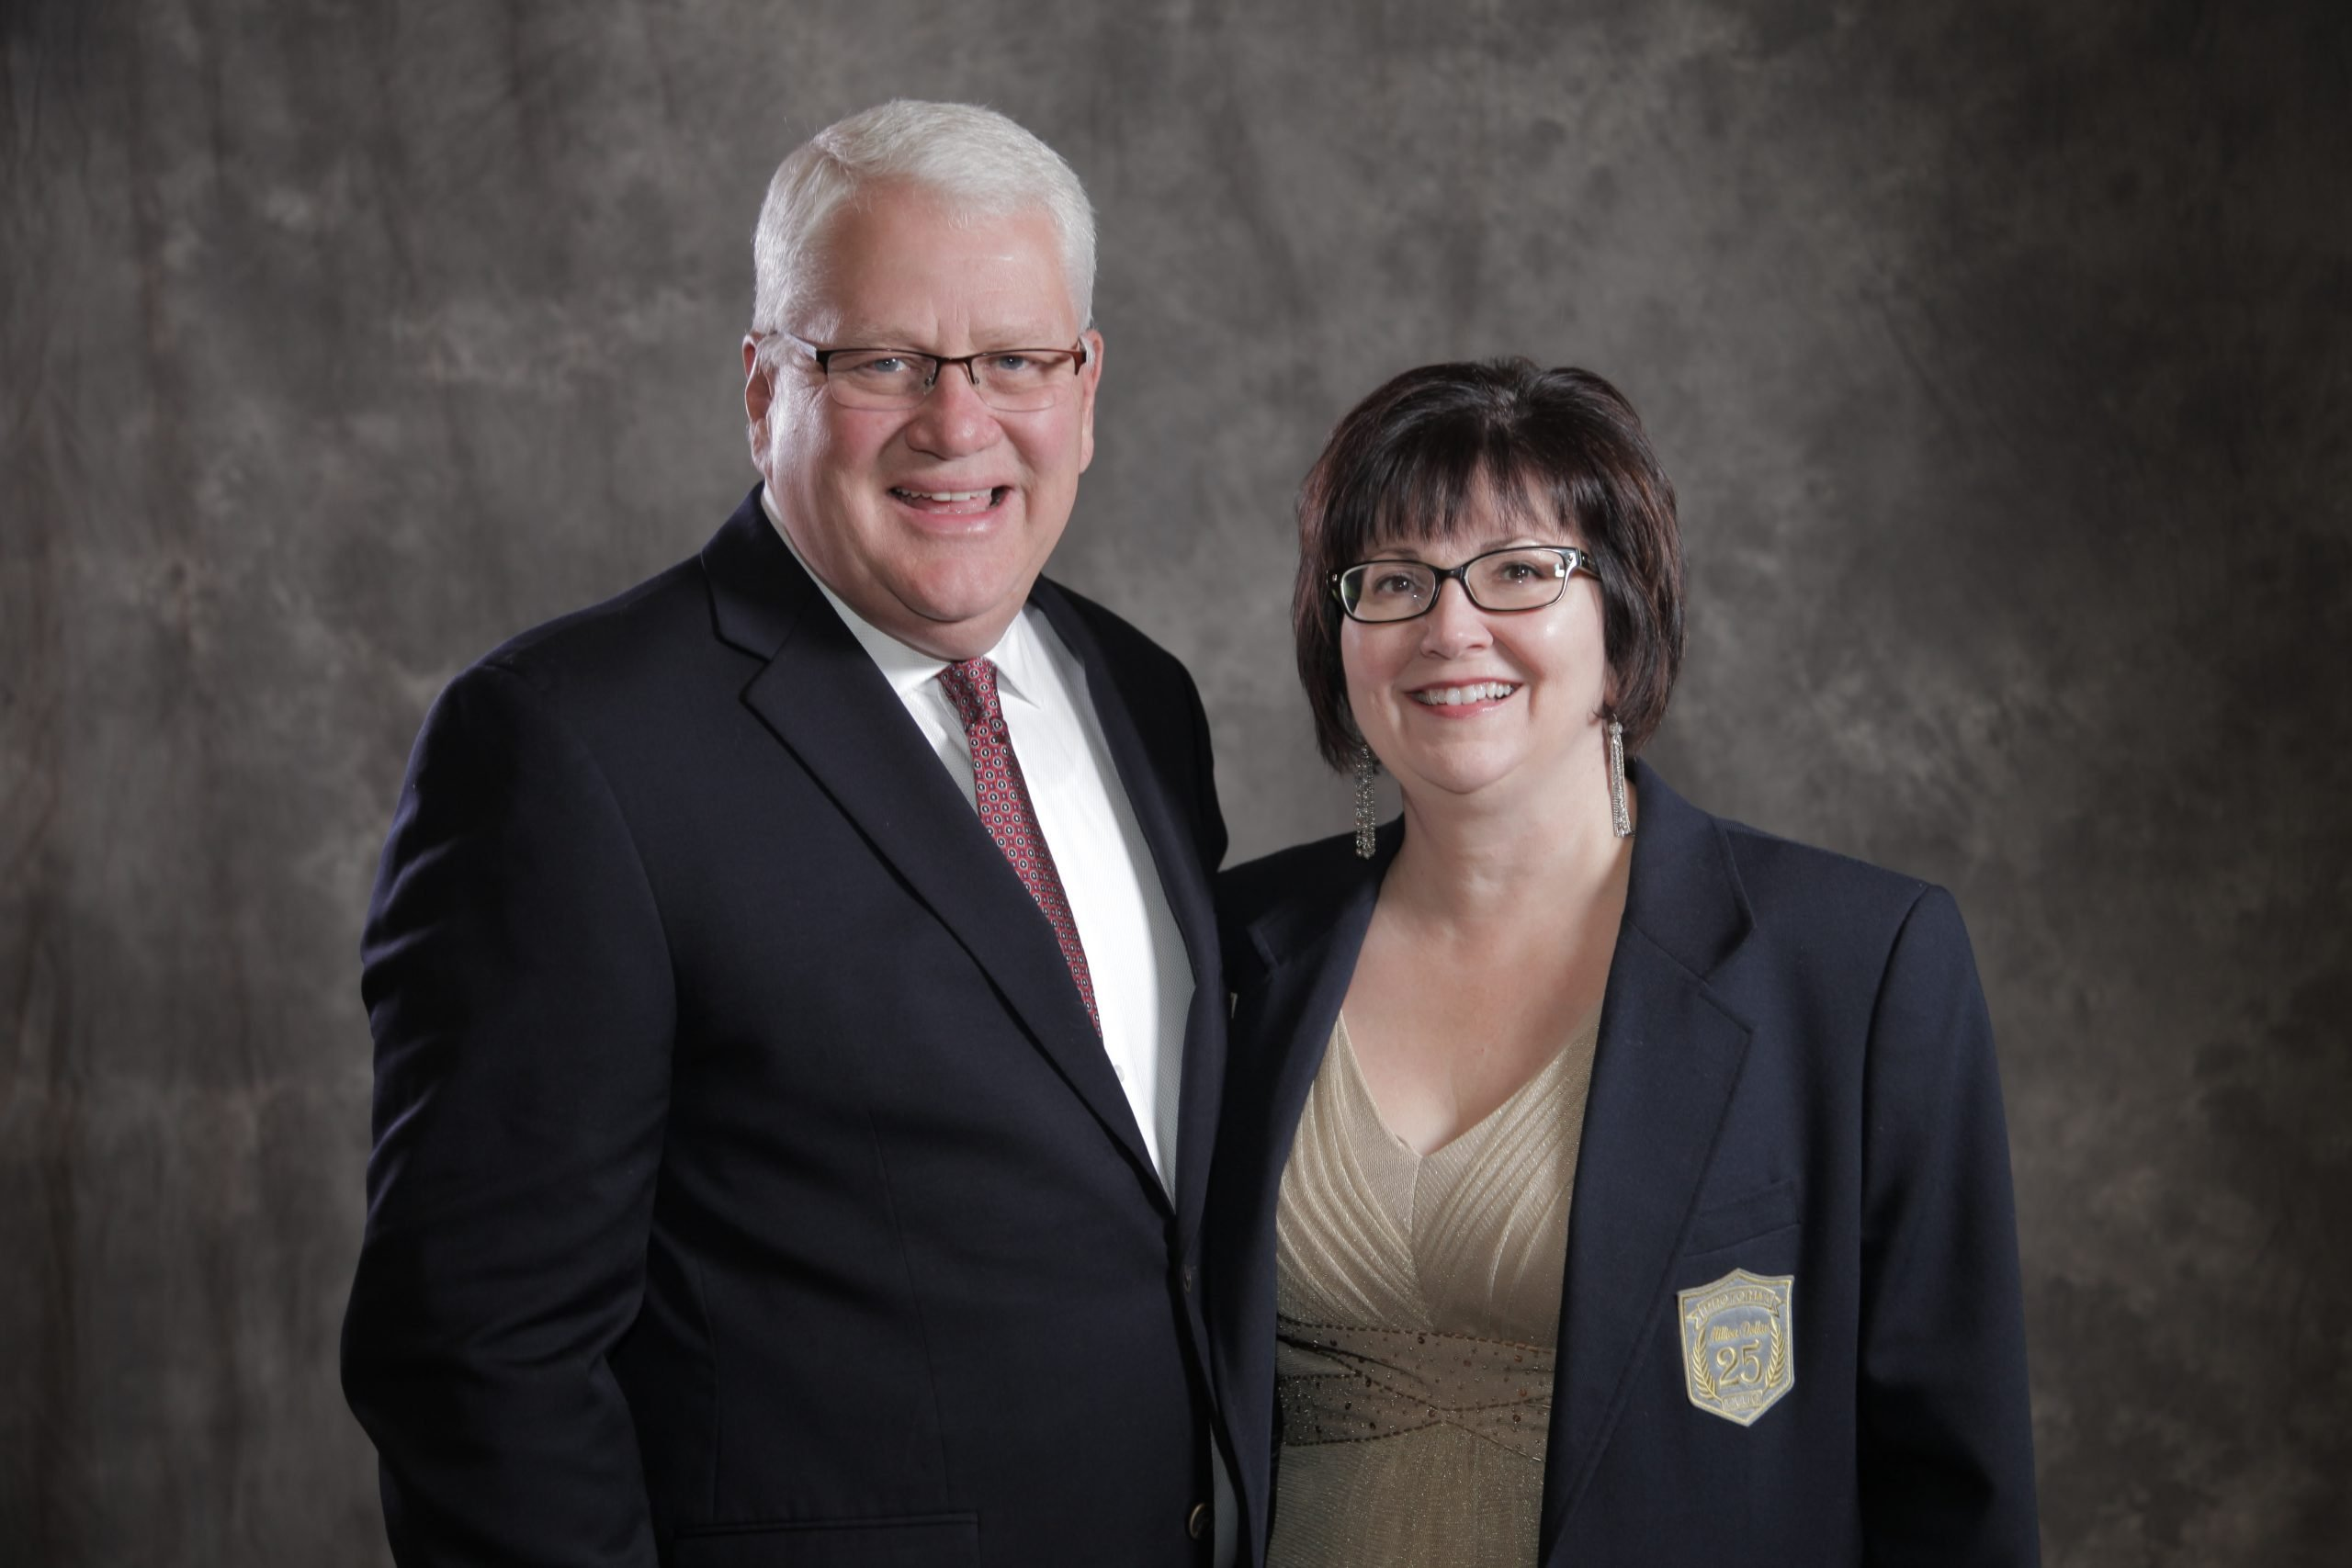 Portrait of Fred Albrecht and Suzette Albrecht, Co-Owners of Proforma Albrecht